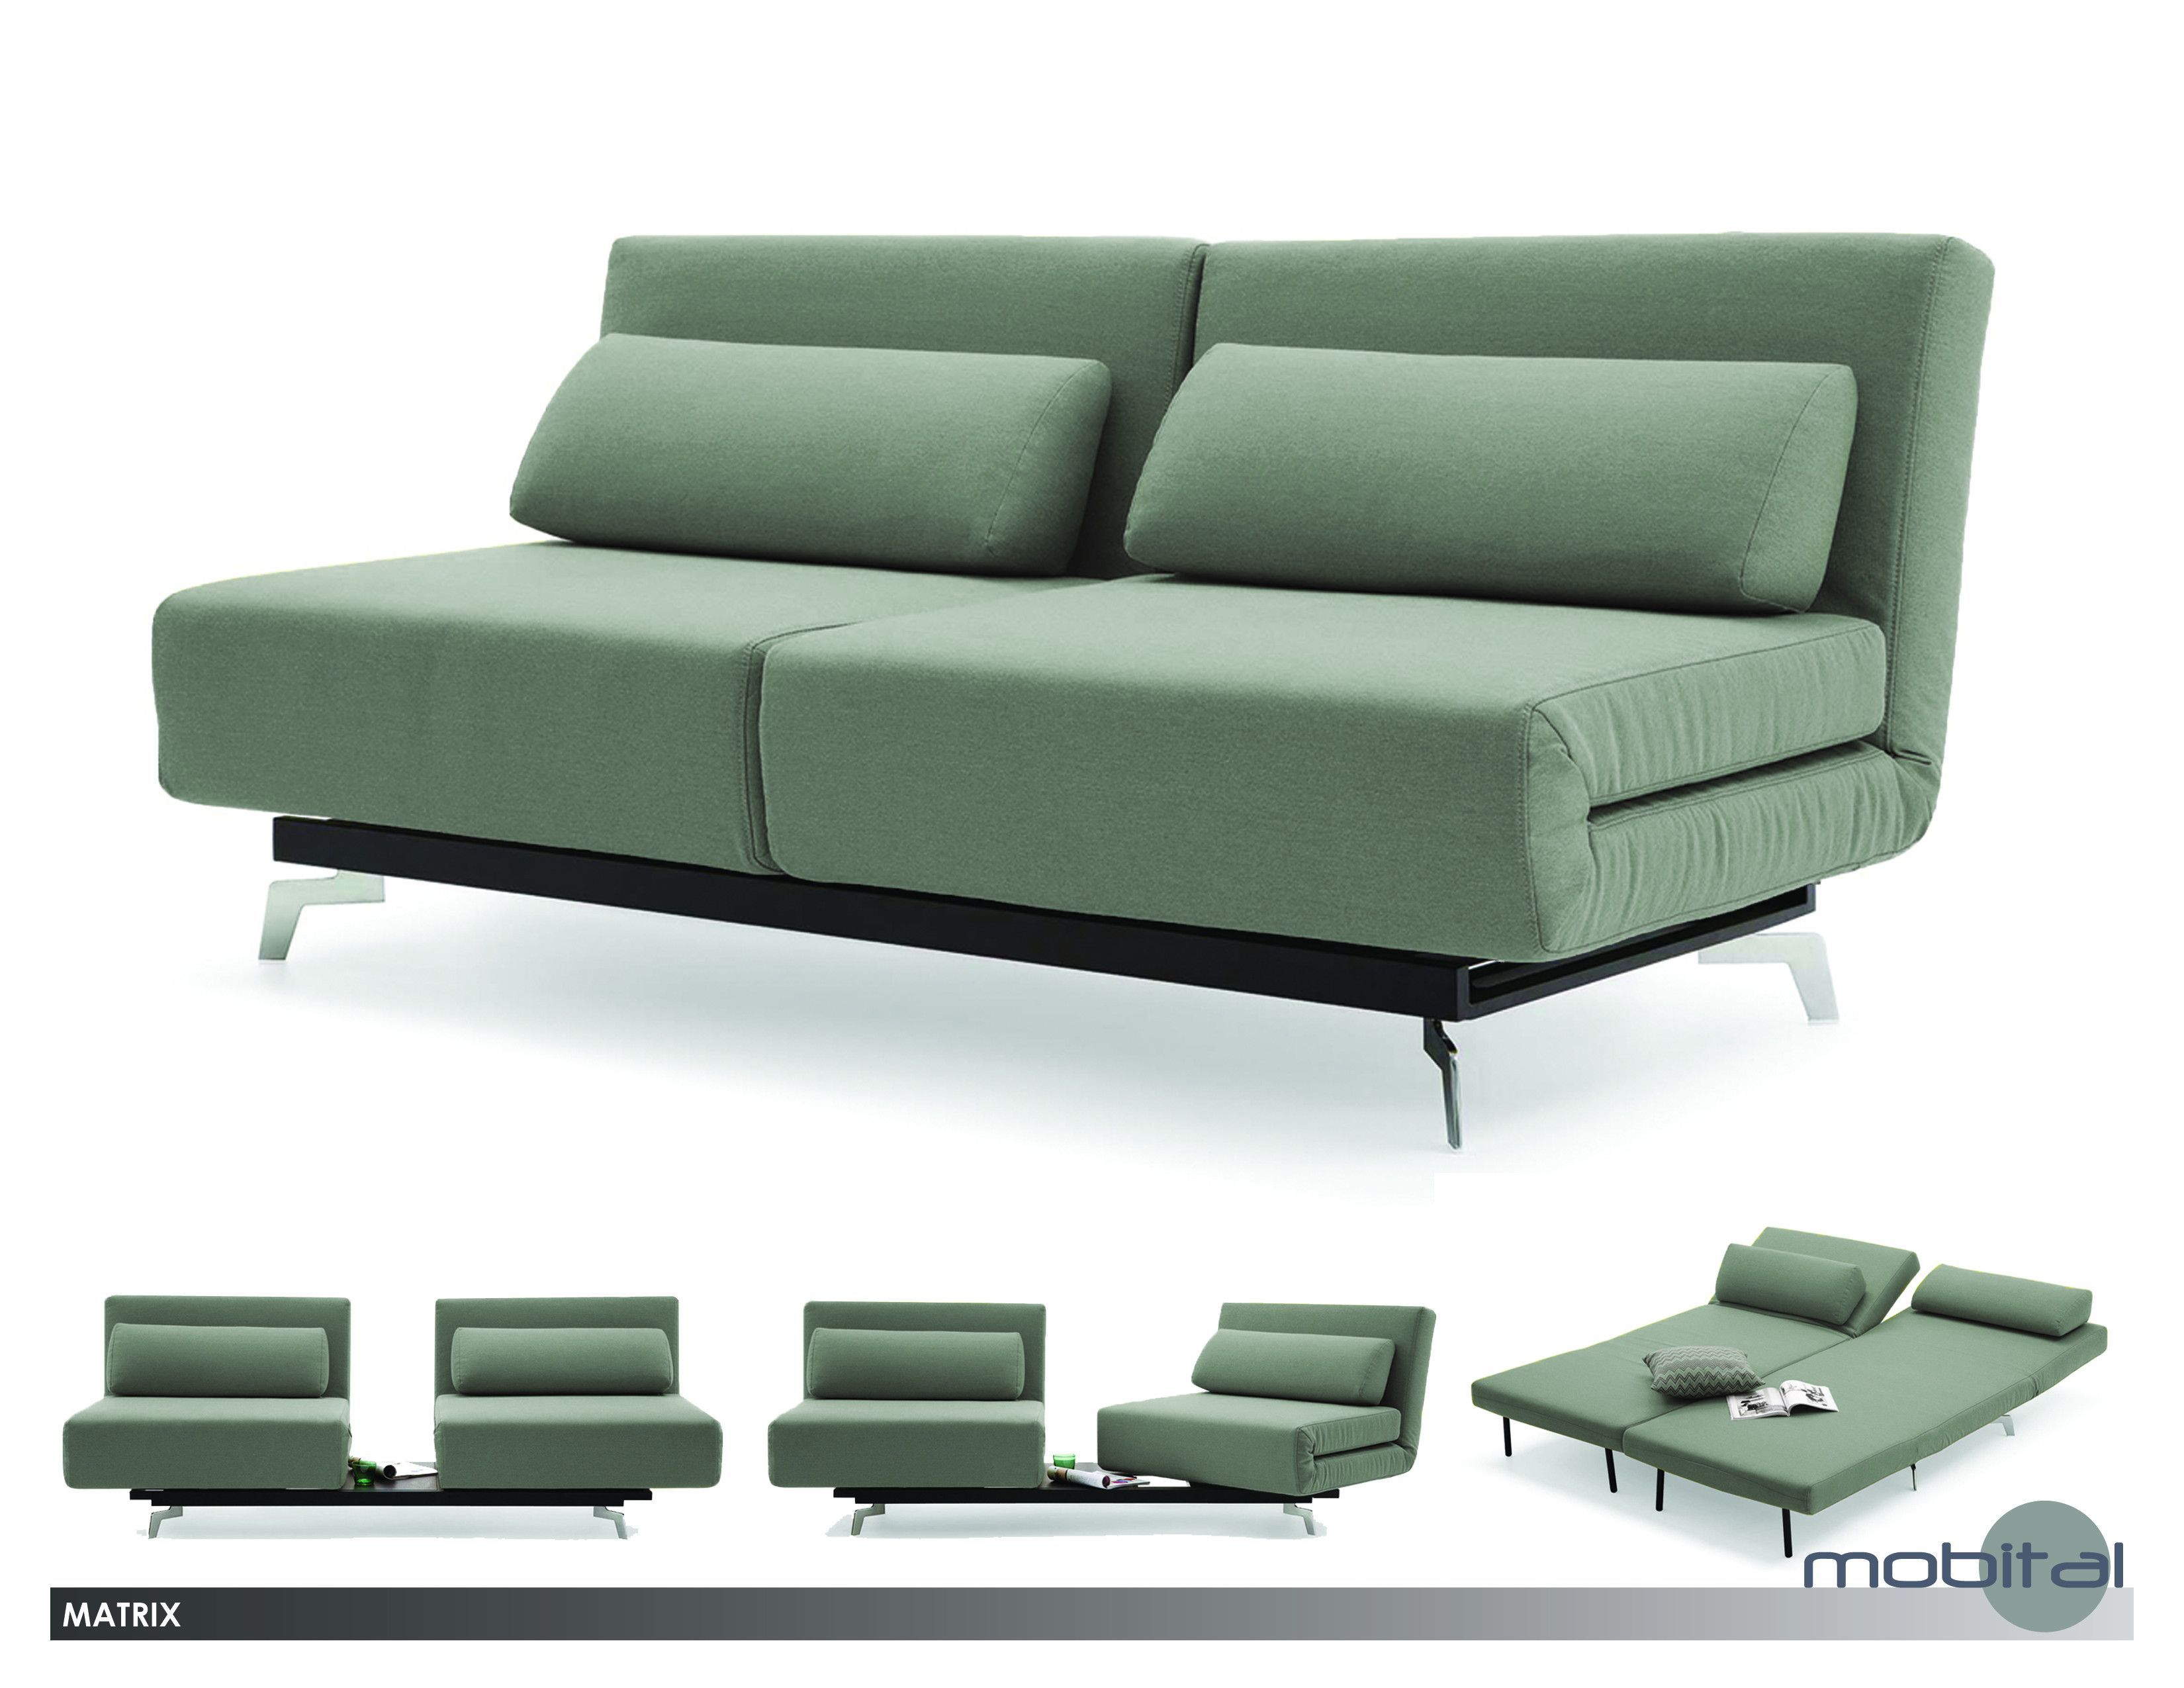 Matrix Sofabed Grey Tweed Products In 2019 Futon